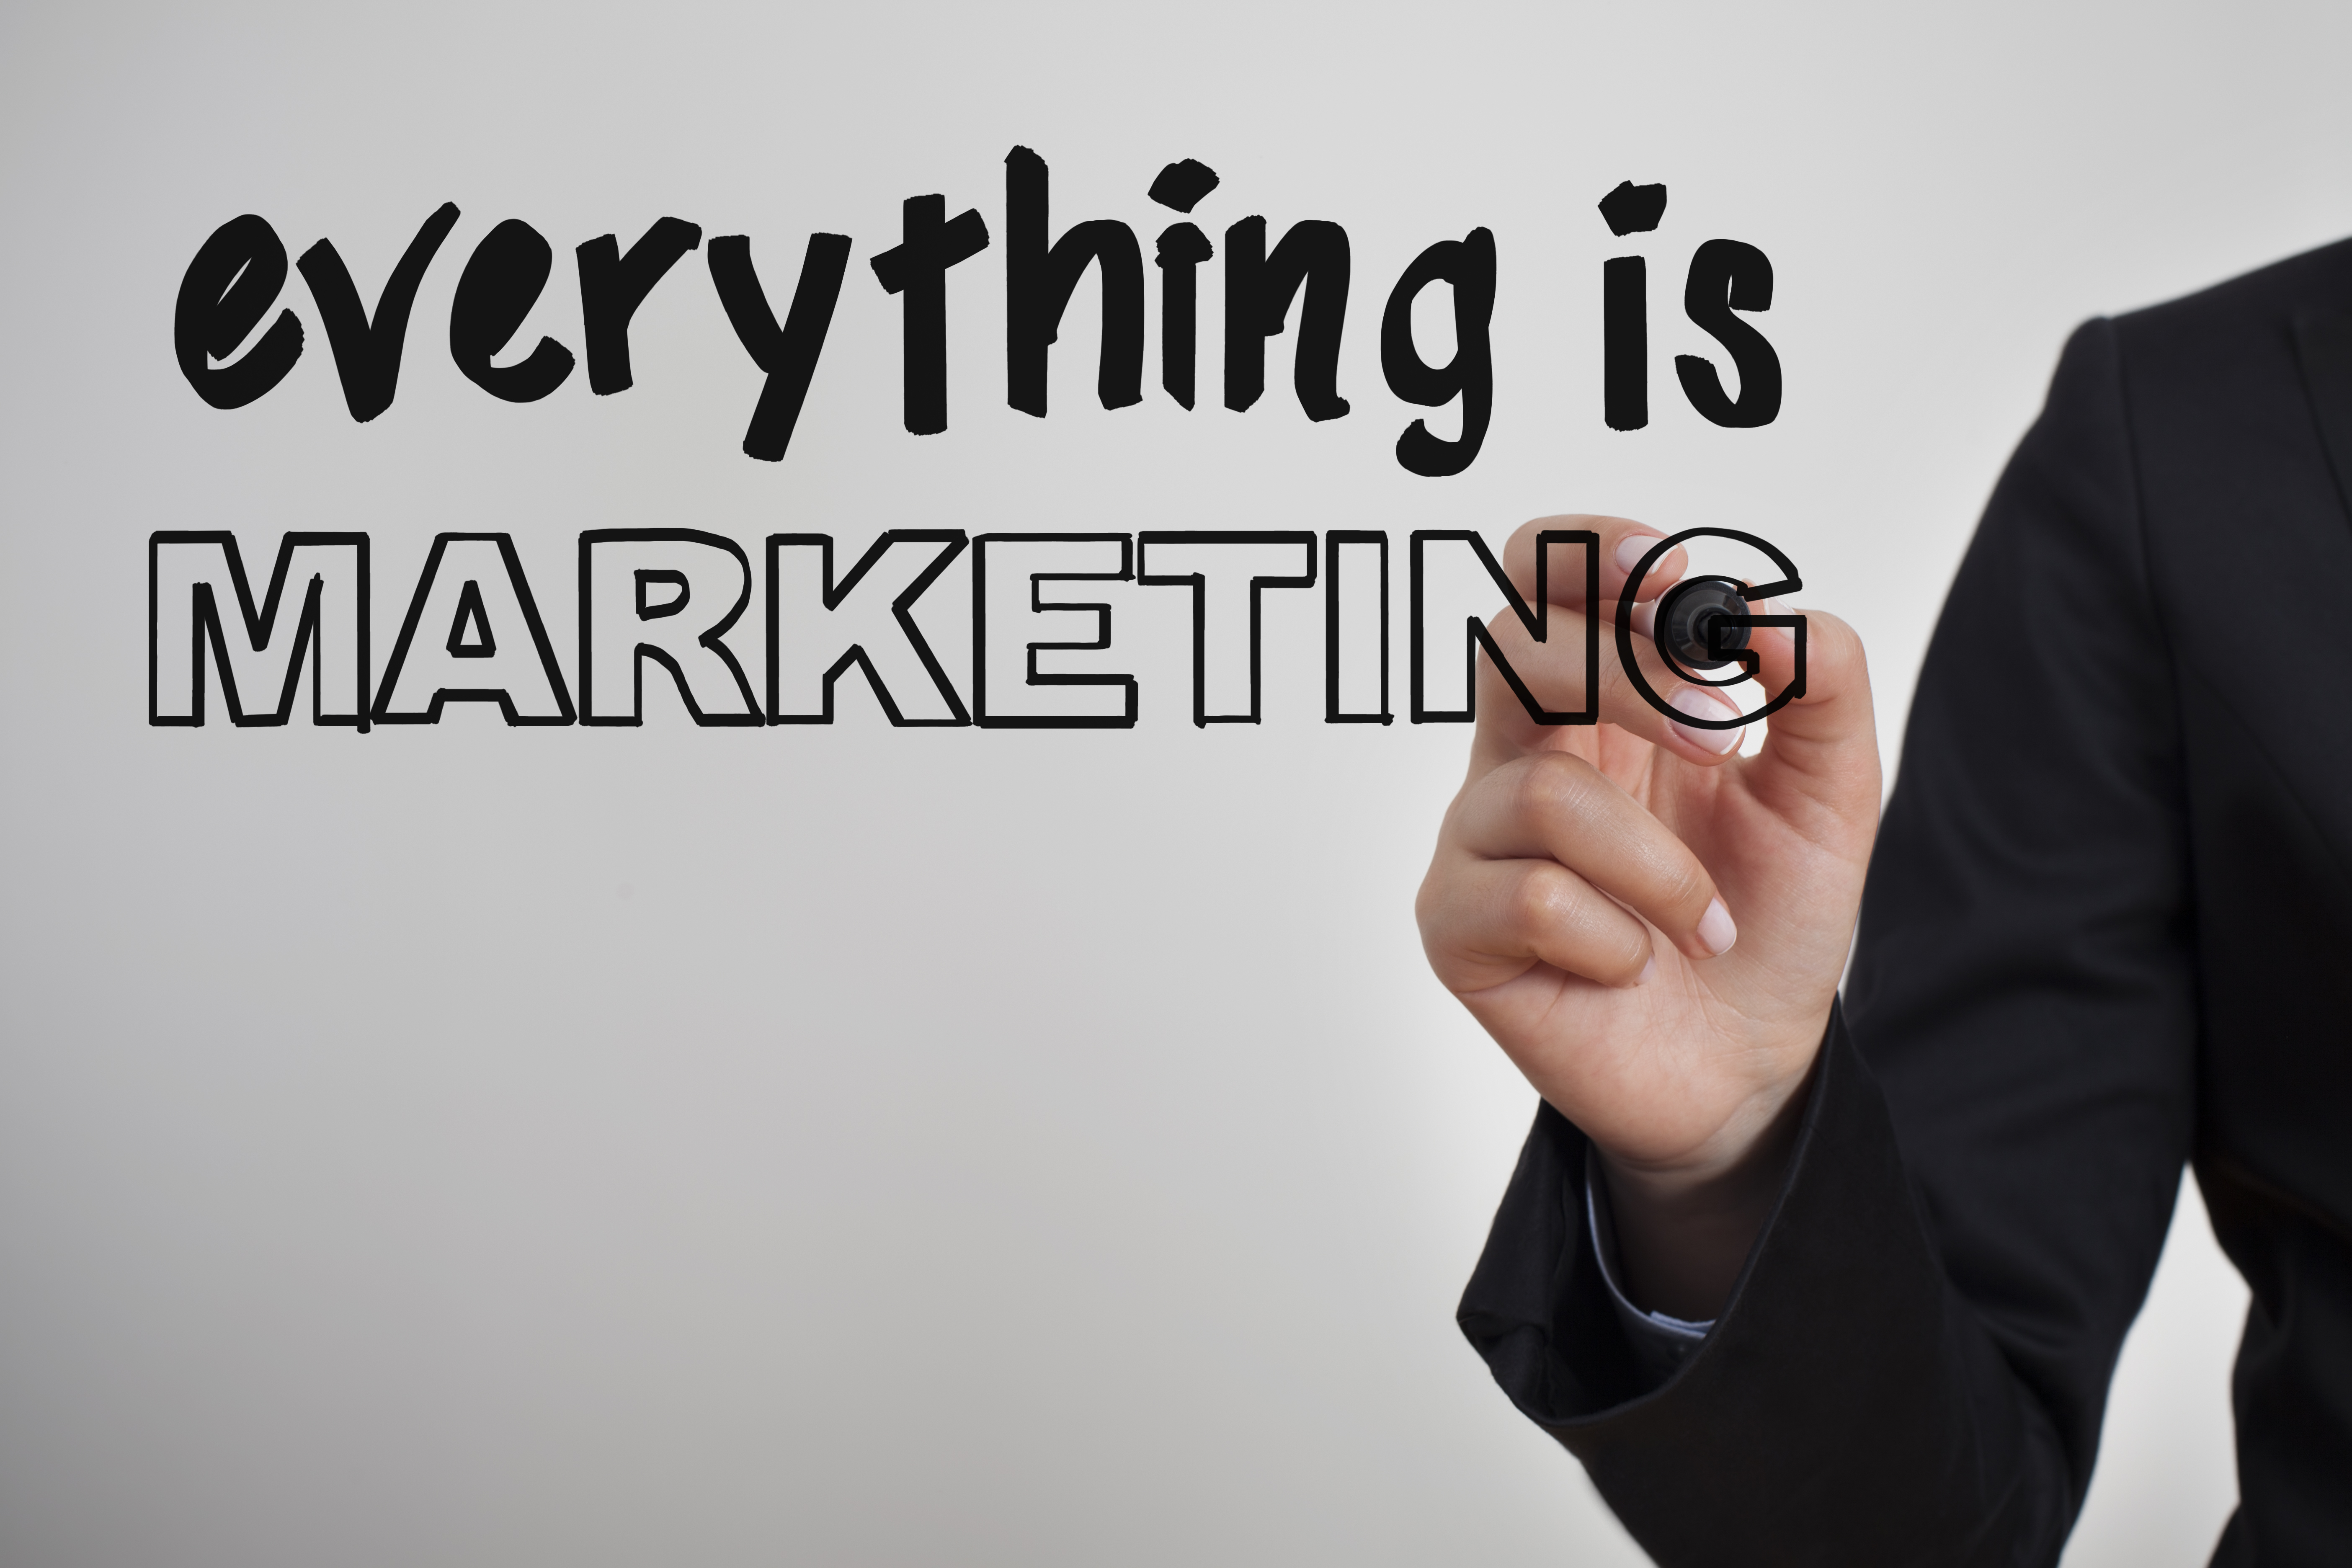 How to think about marketing